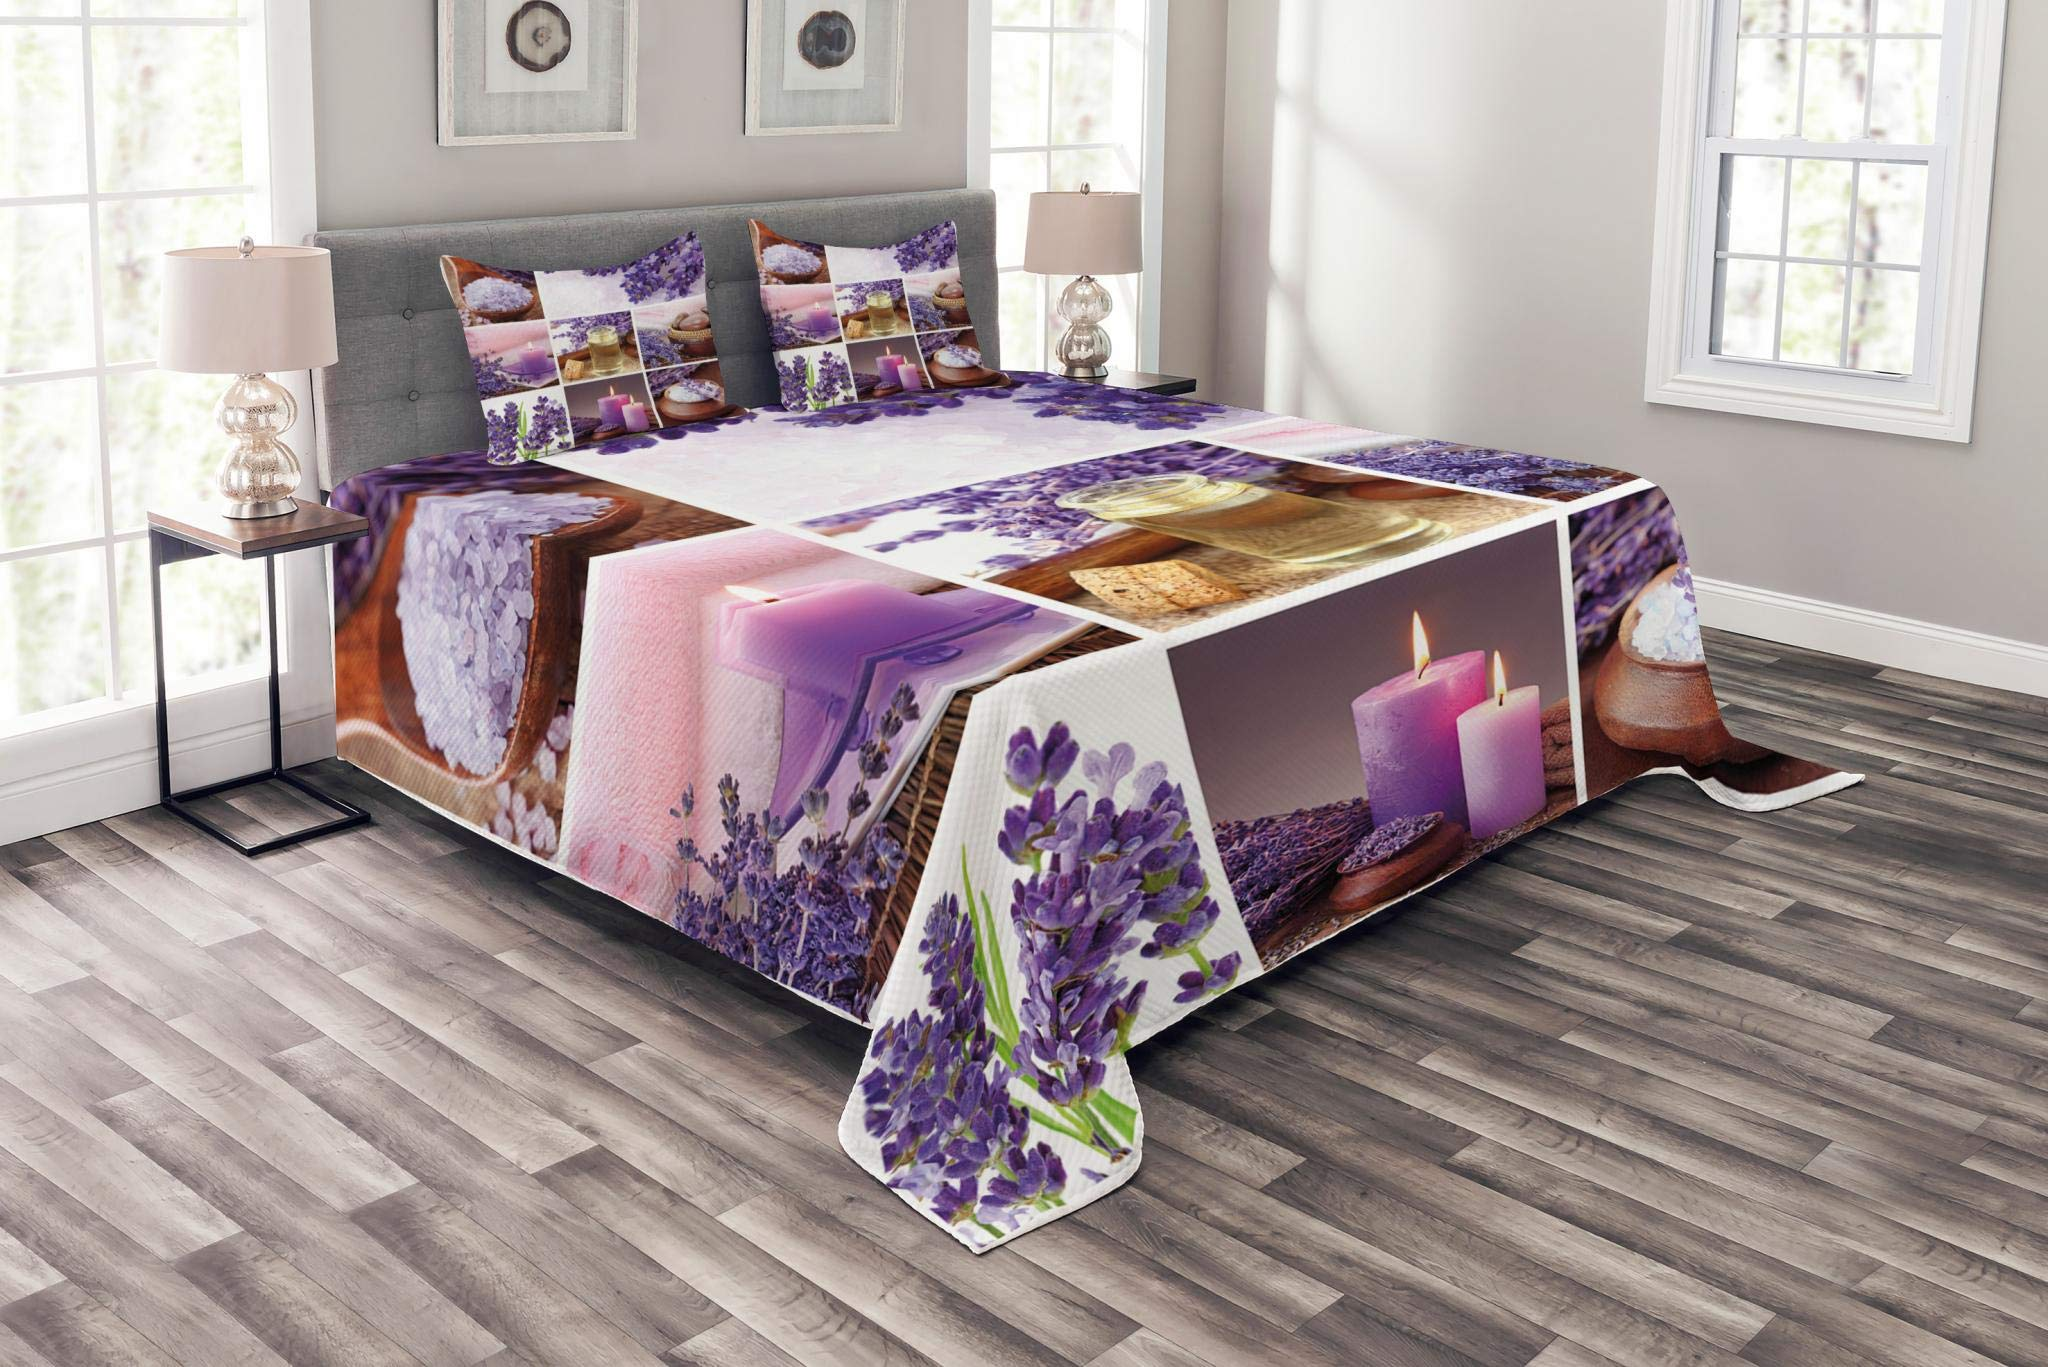 Lunarable Spa Bedspread Set King Size, Lavender Garden Alike Themed Relaxing Candles Stones Herbal Salt Elements Image, Decorative Quilted 3 Piece Coverlet Set with 2 Pillow Shams, Purple and White